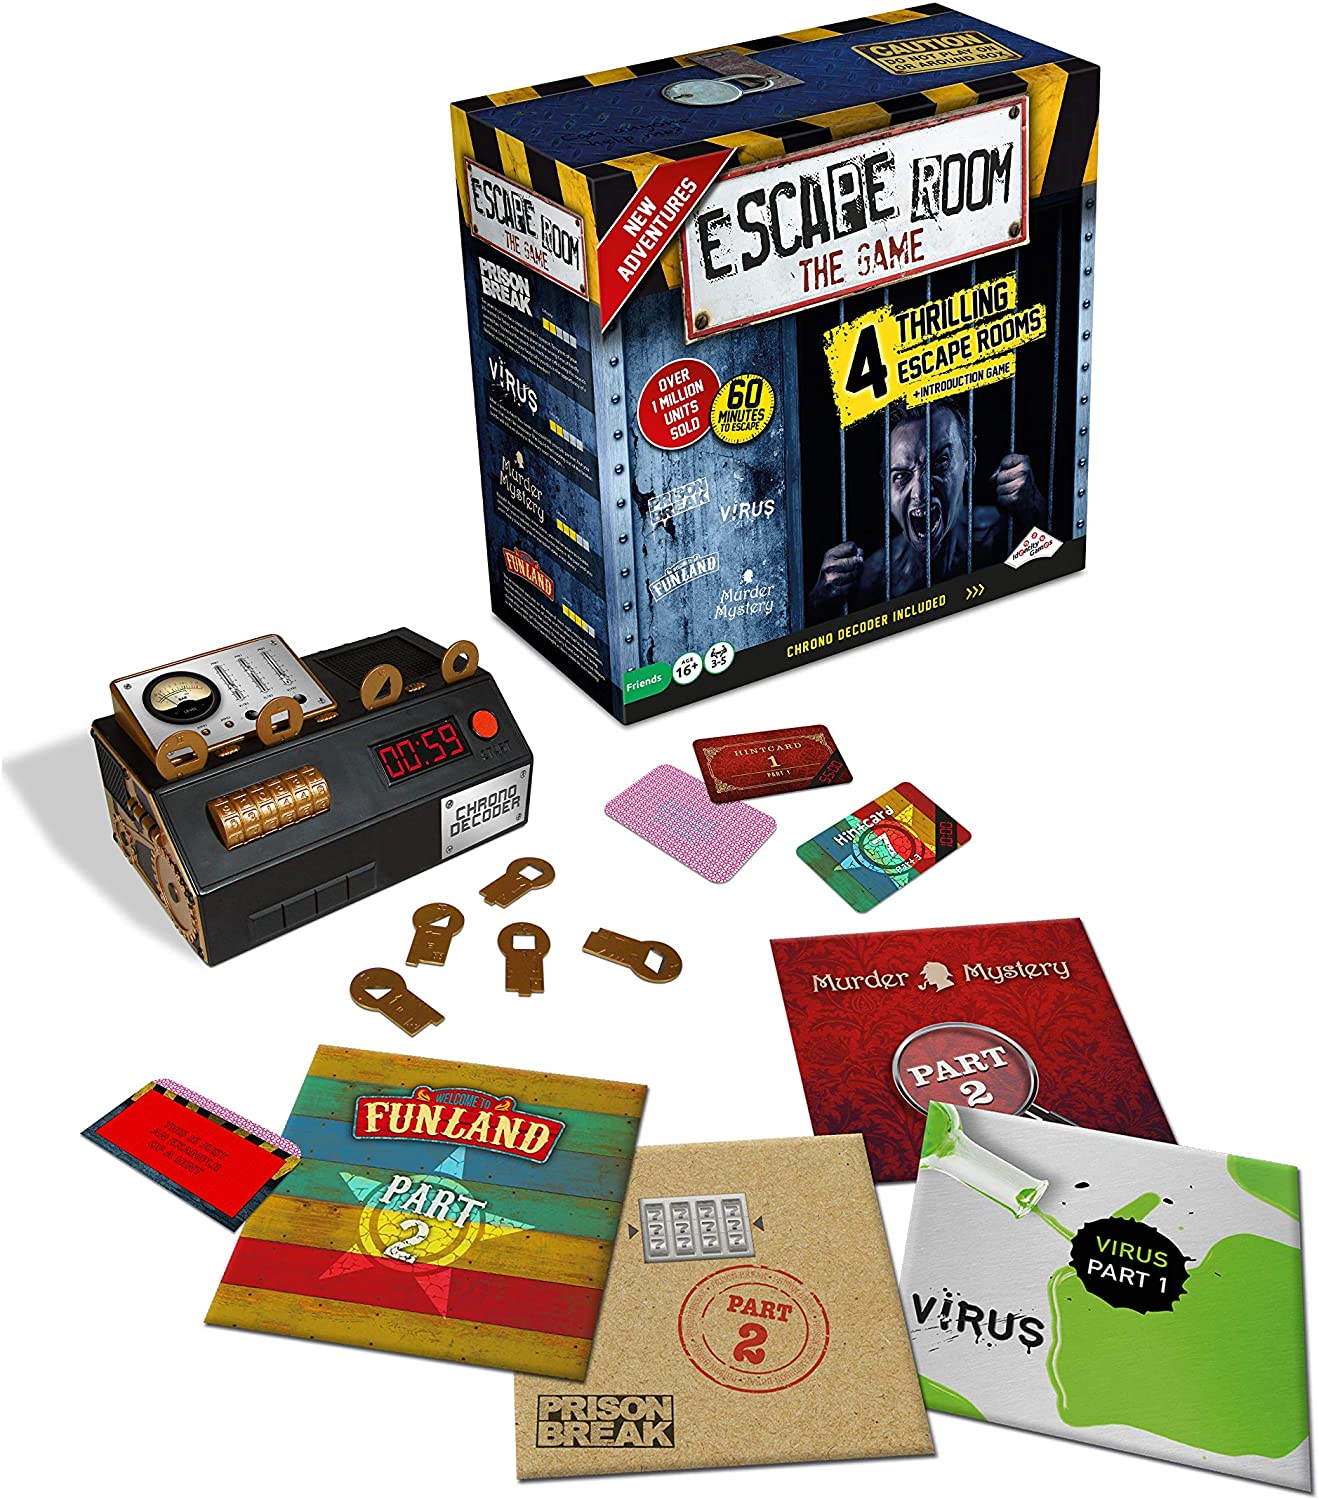 Escape Room The Game, Version 2 - scary escape room kits for families